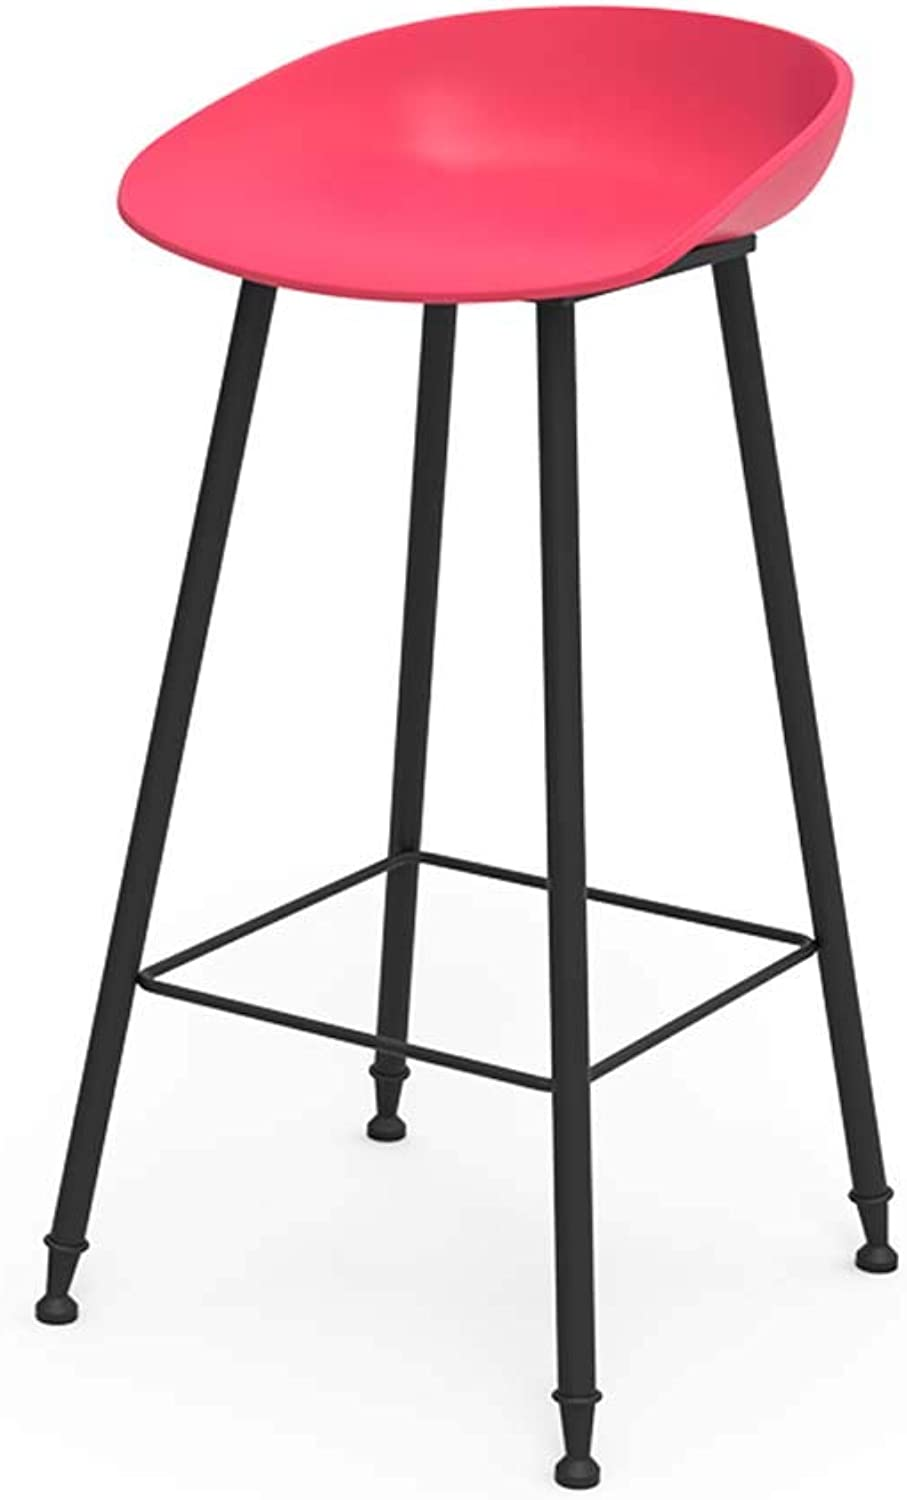 Bar Stool Bar Chair High Stool Iron High Chair Kitchen Cafe Chair Counter Hotel Chair Dining Chair Living Room Desk Chair (color   RED)